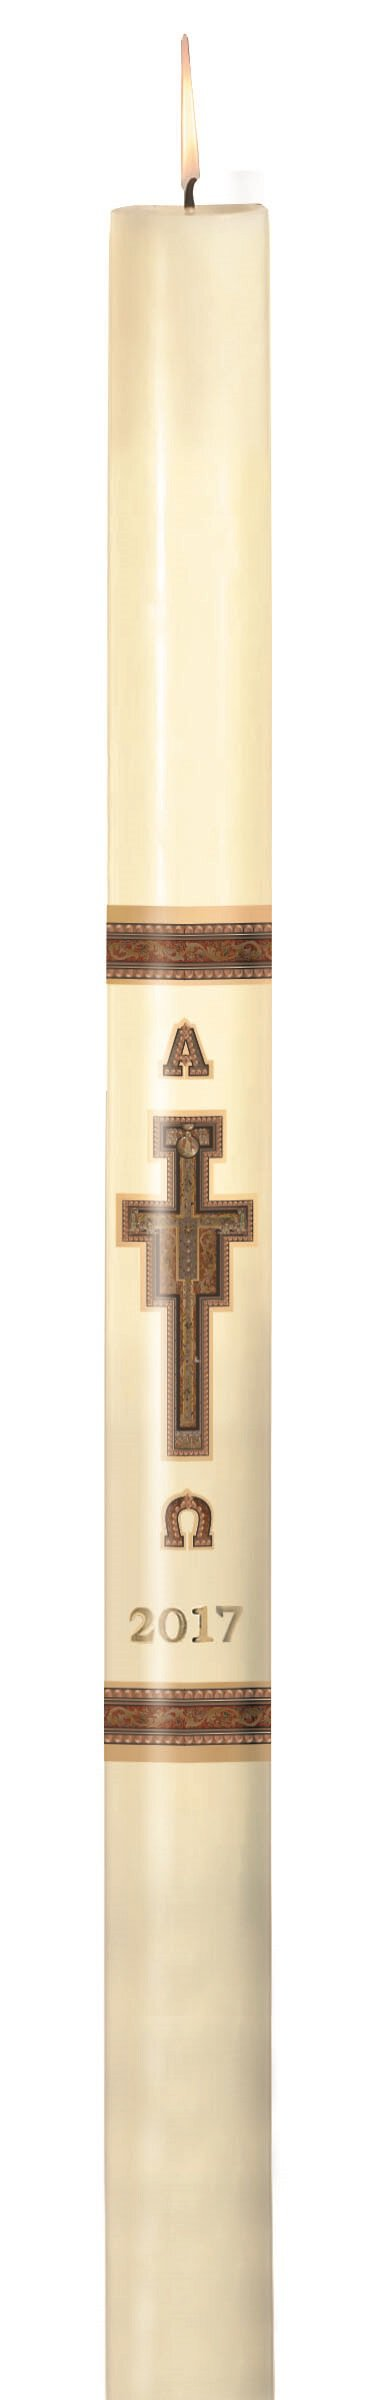 No 10 San Damiano Paschal Candle